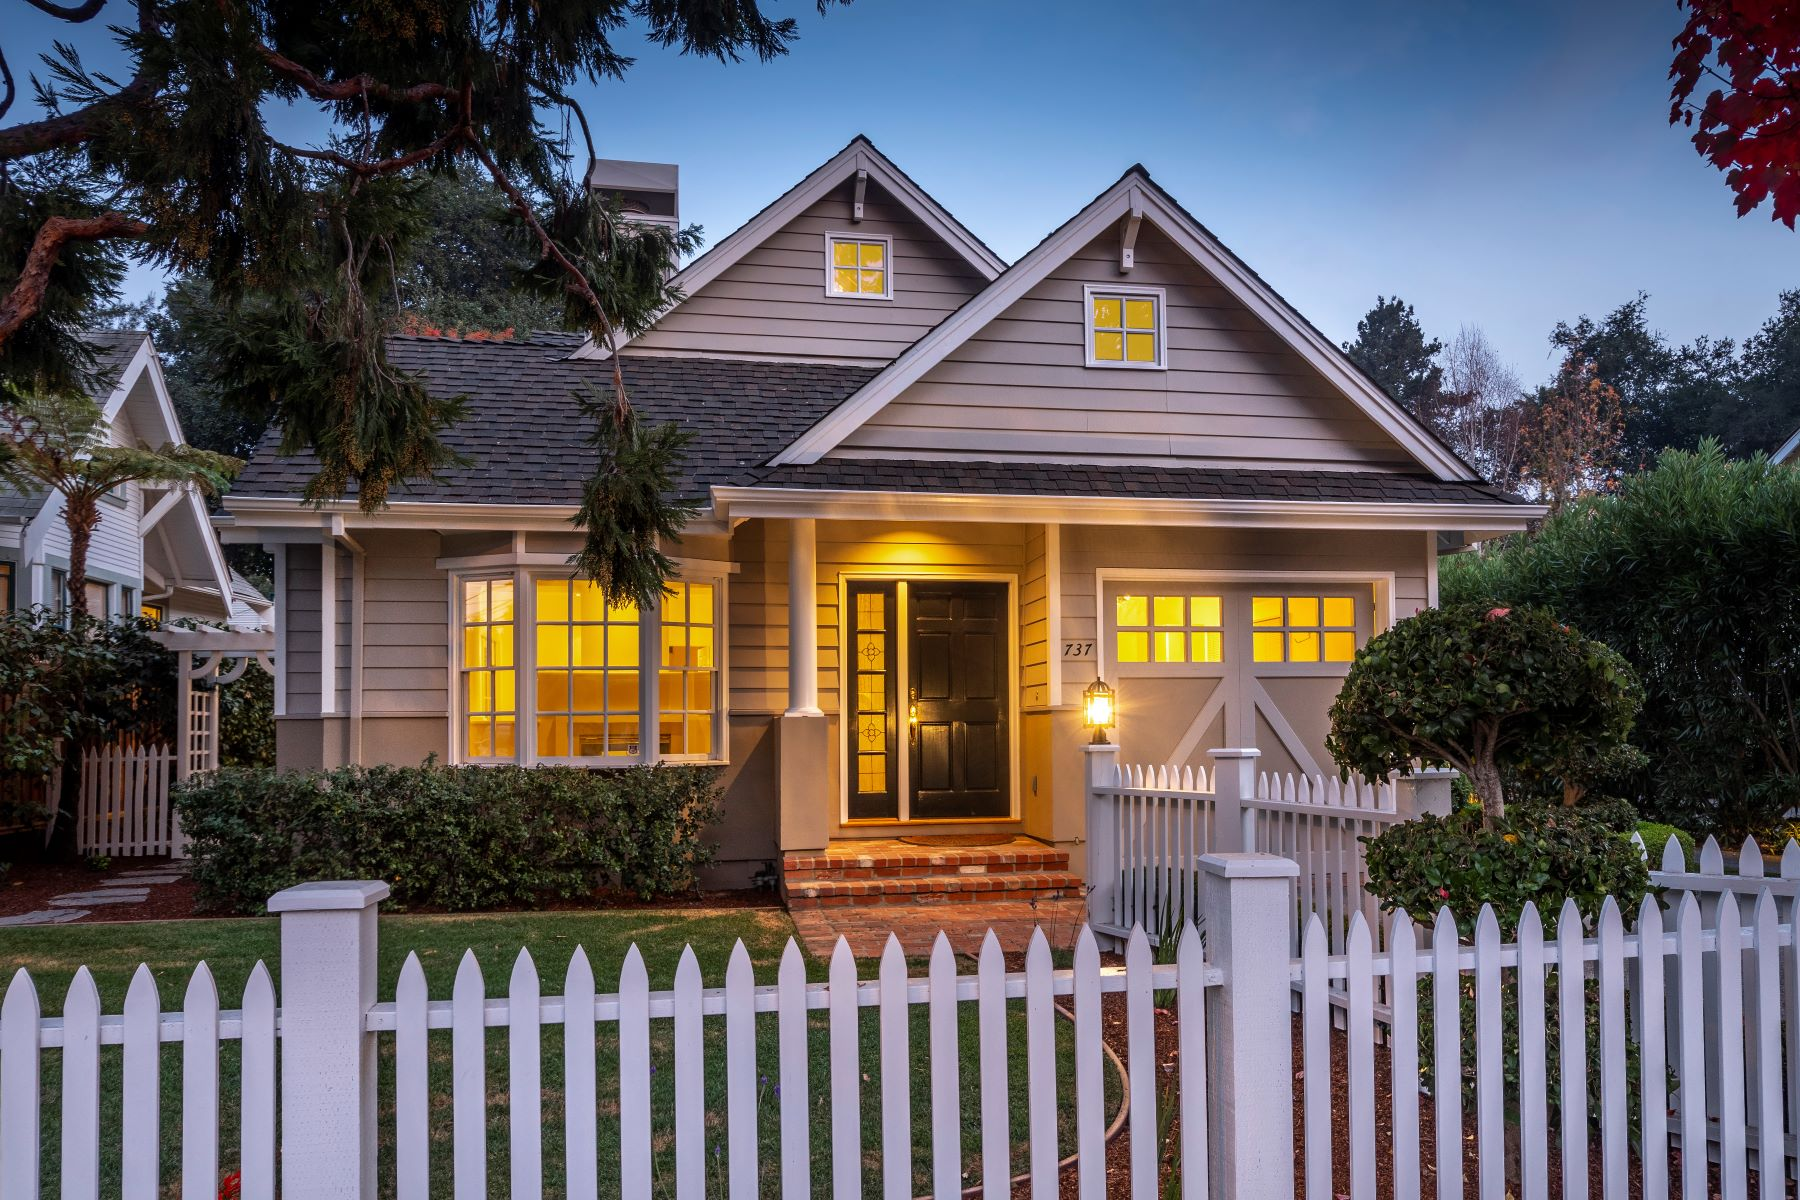 Single Family Home for Active at 737 Harvard Avenue 737 Harvard Avenue Menlo Park, California 94025 United States